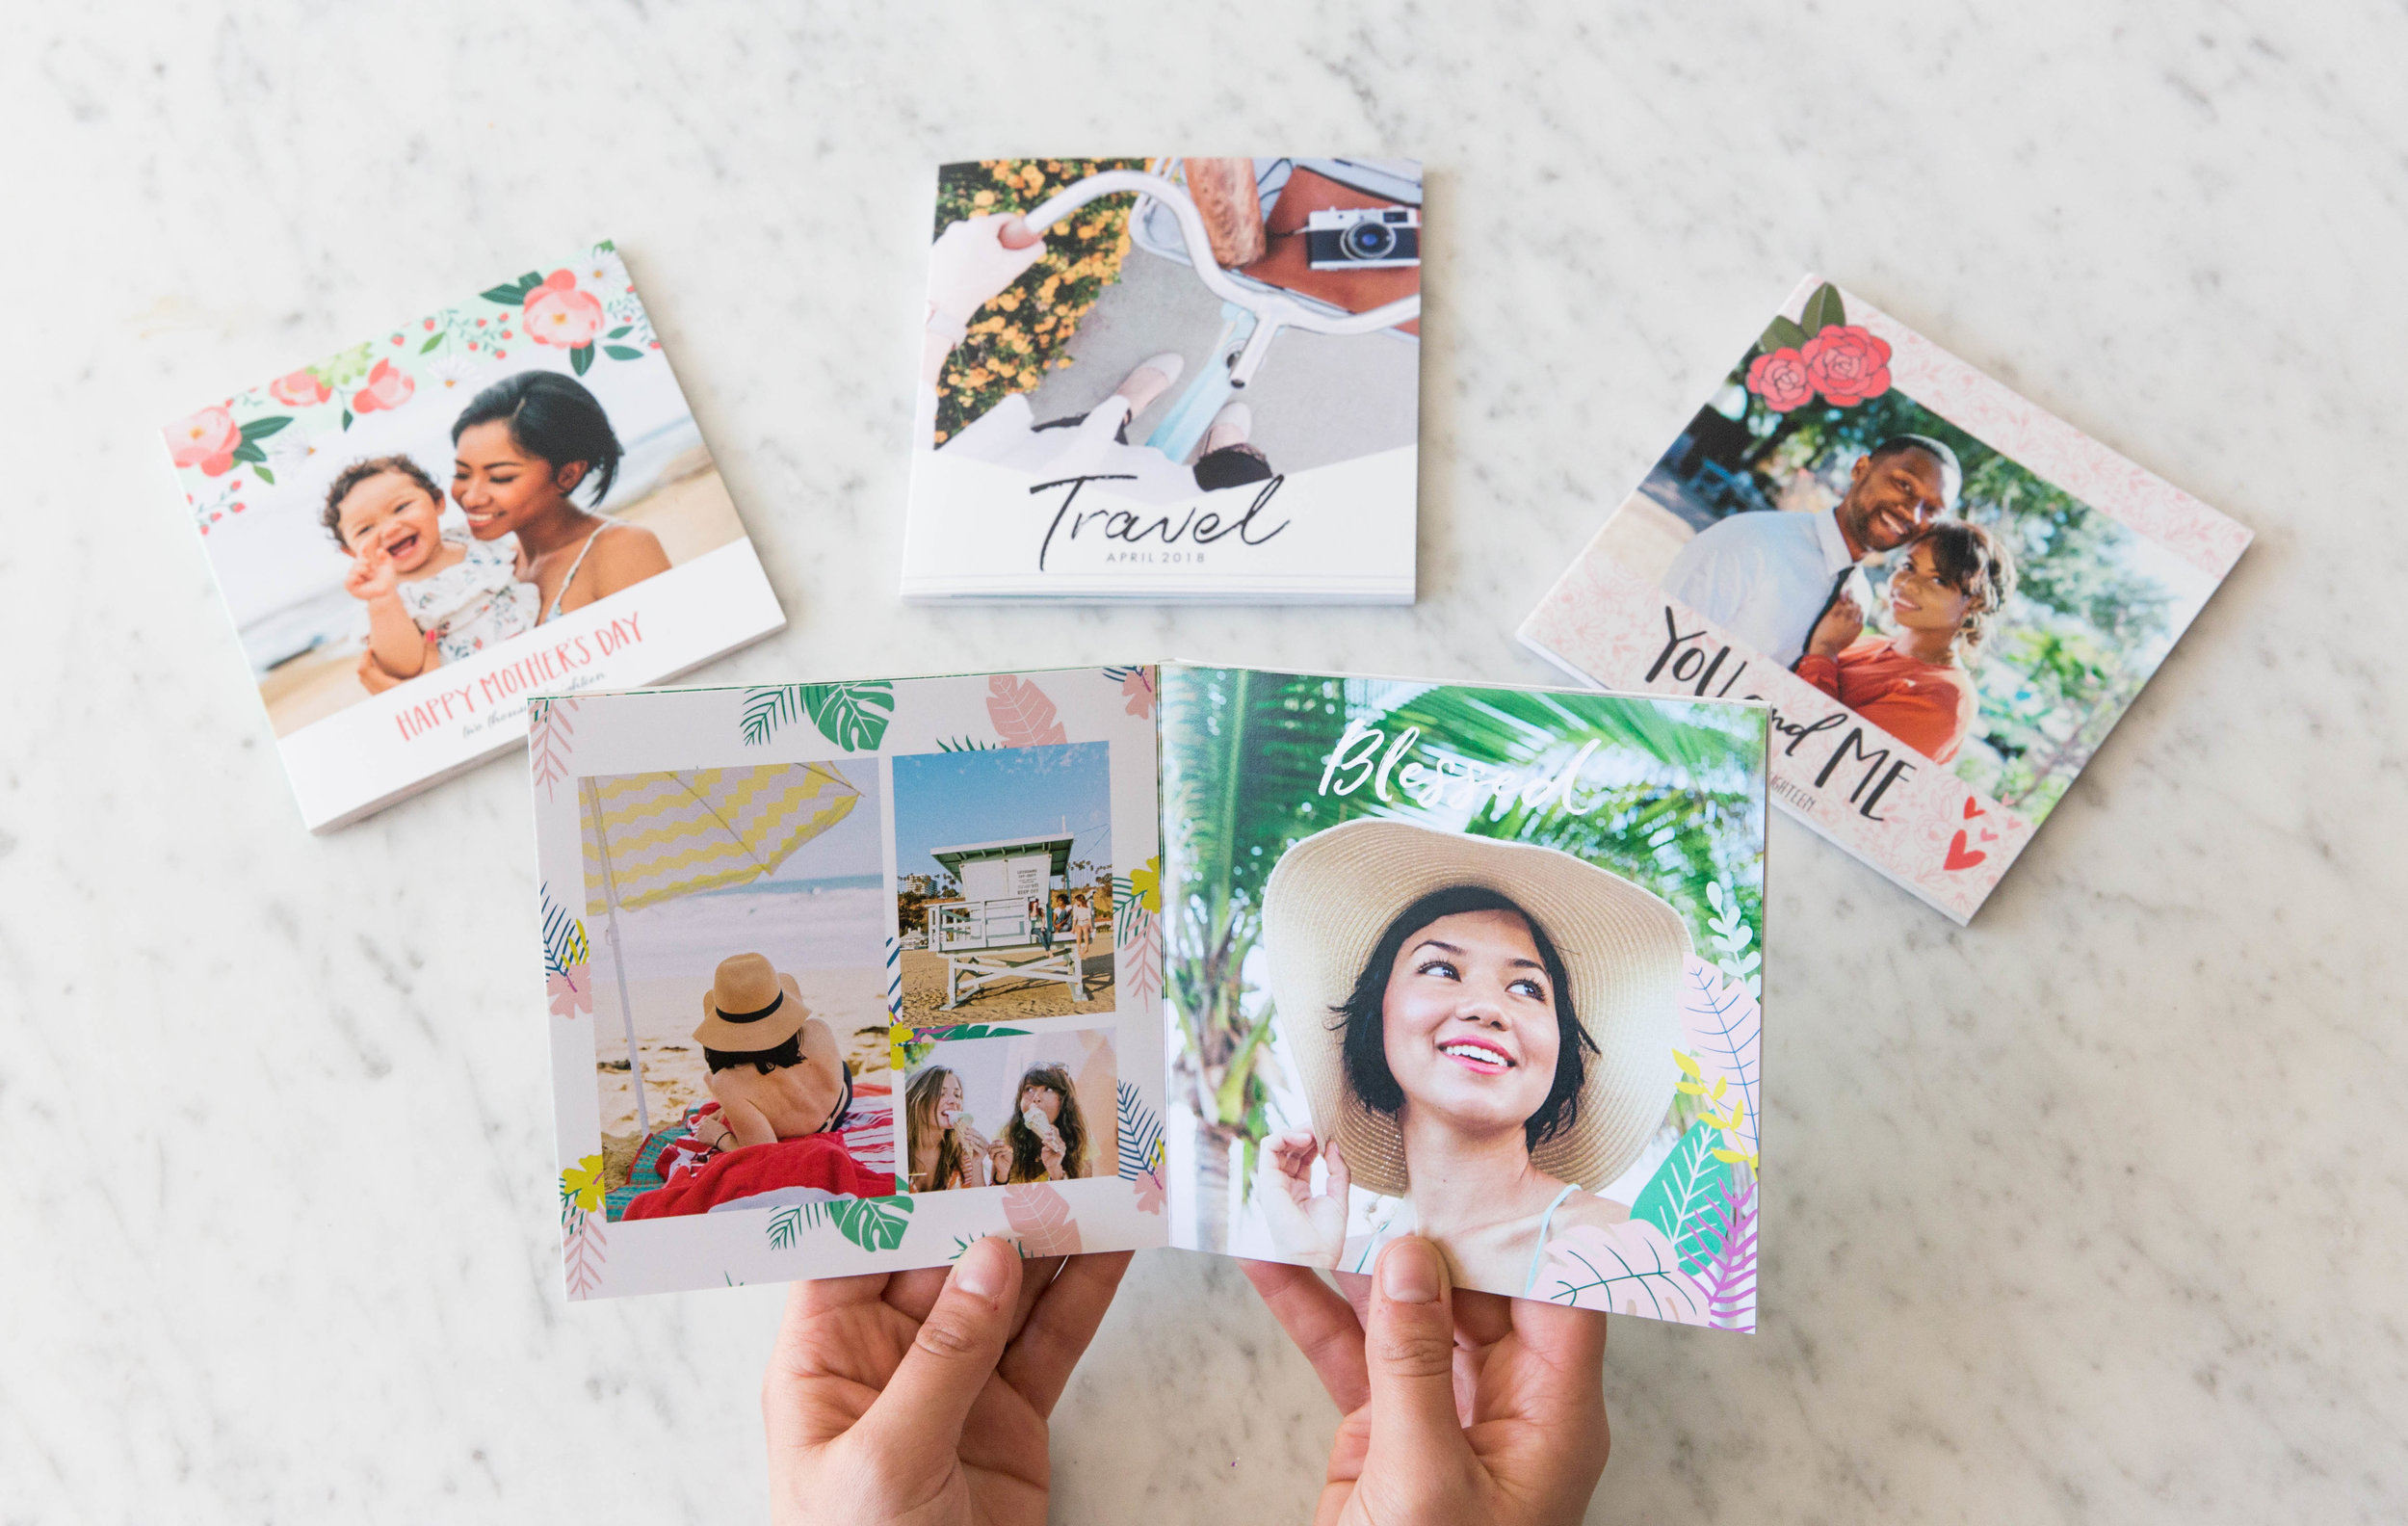 quality replacement for iphoto printing products